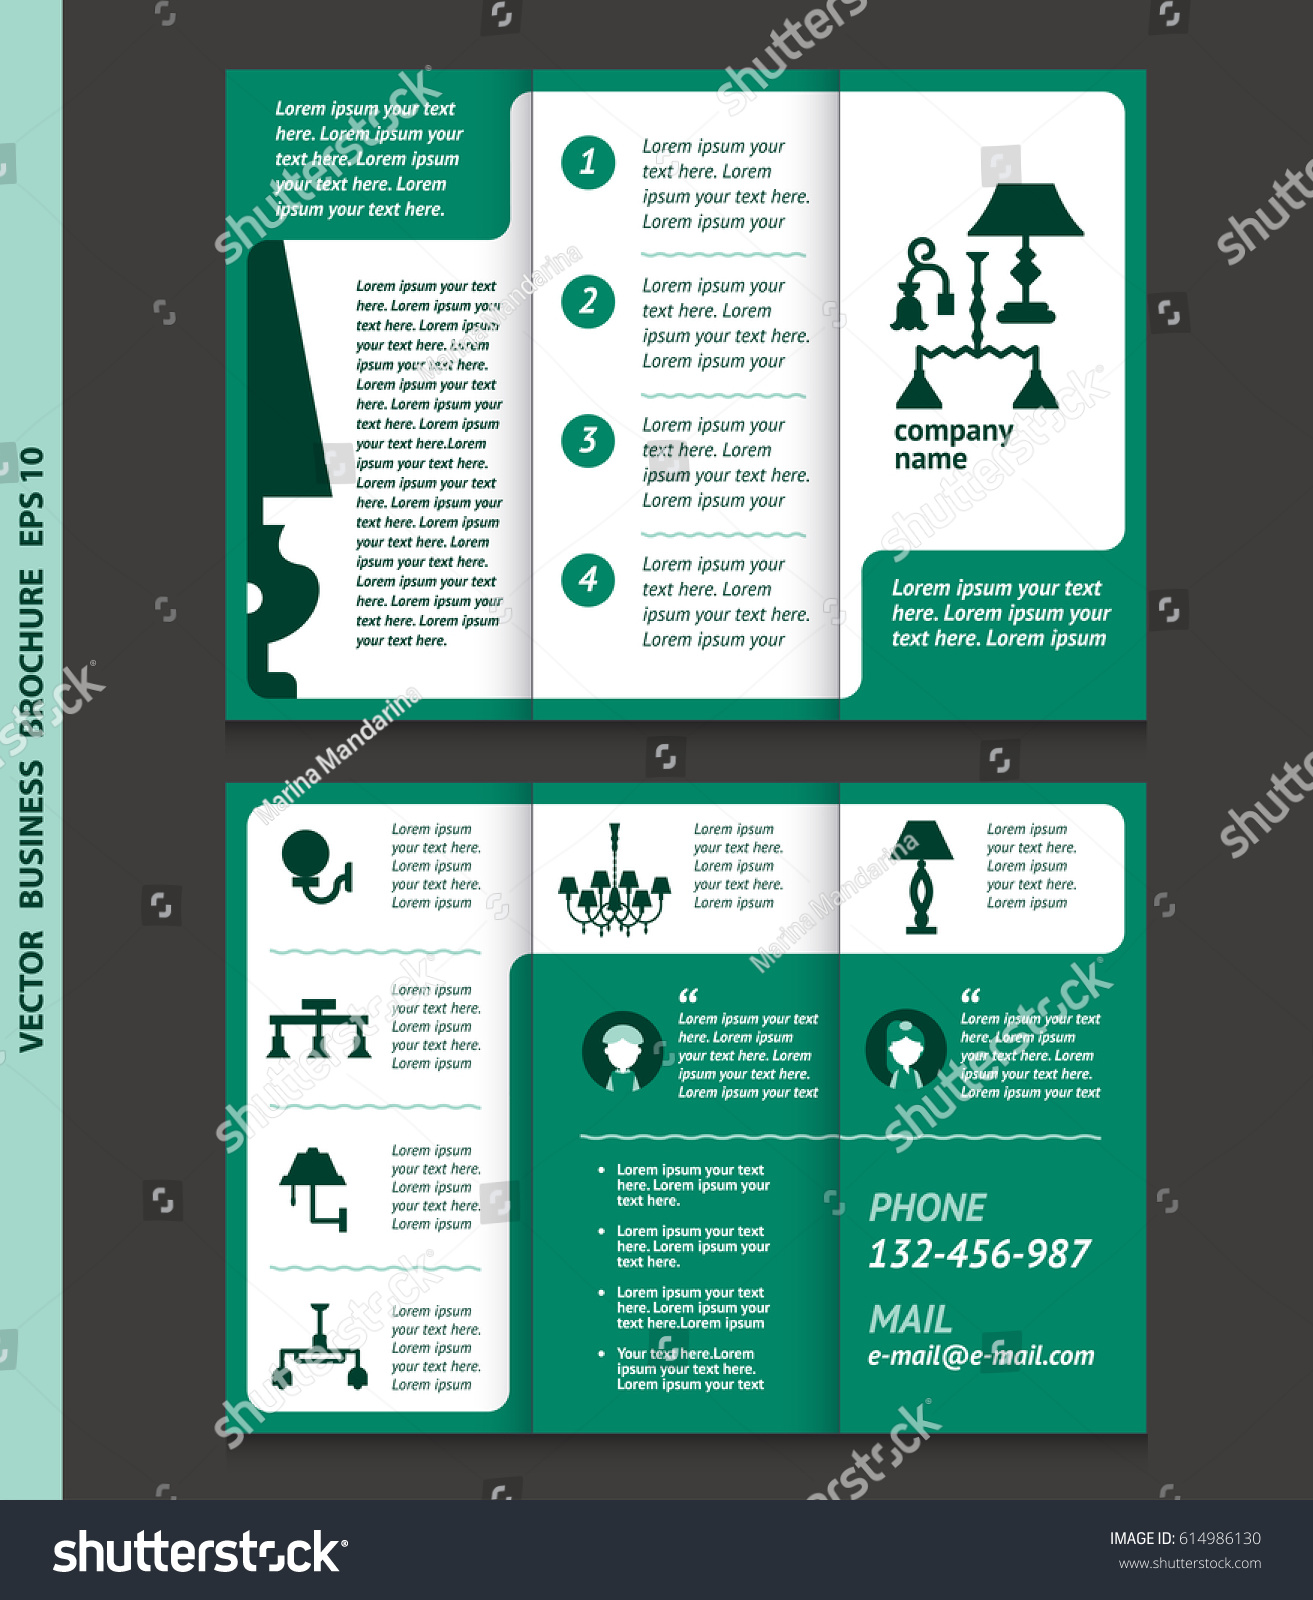 Business brochure template lamps chandeliers vector stock vector business brochure template with lamps and chandeliers vector design eps 10 can be arubaitofo Choice Image